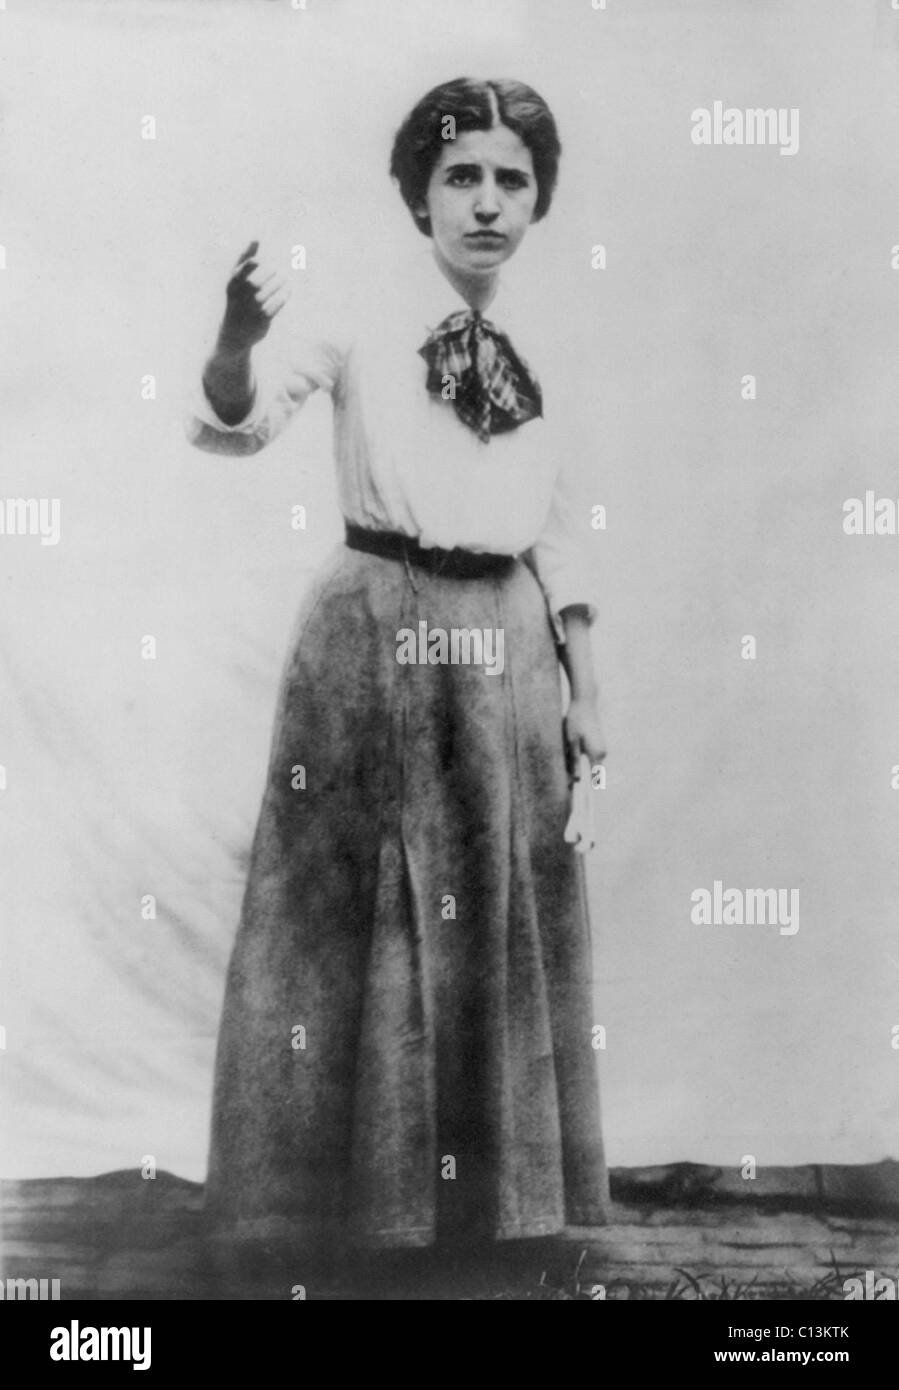 Elizabeth Gurley Flynn (1890-1964), labor leader and feminist associated with the Industrial Workers of the World - Stock Image